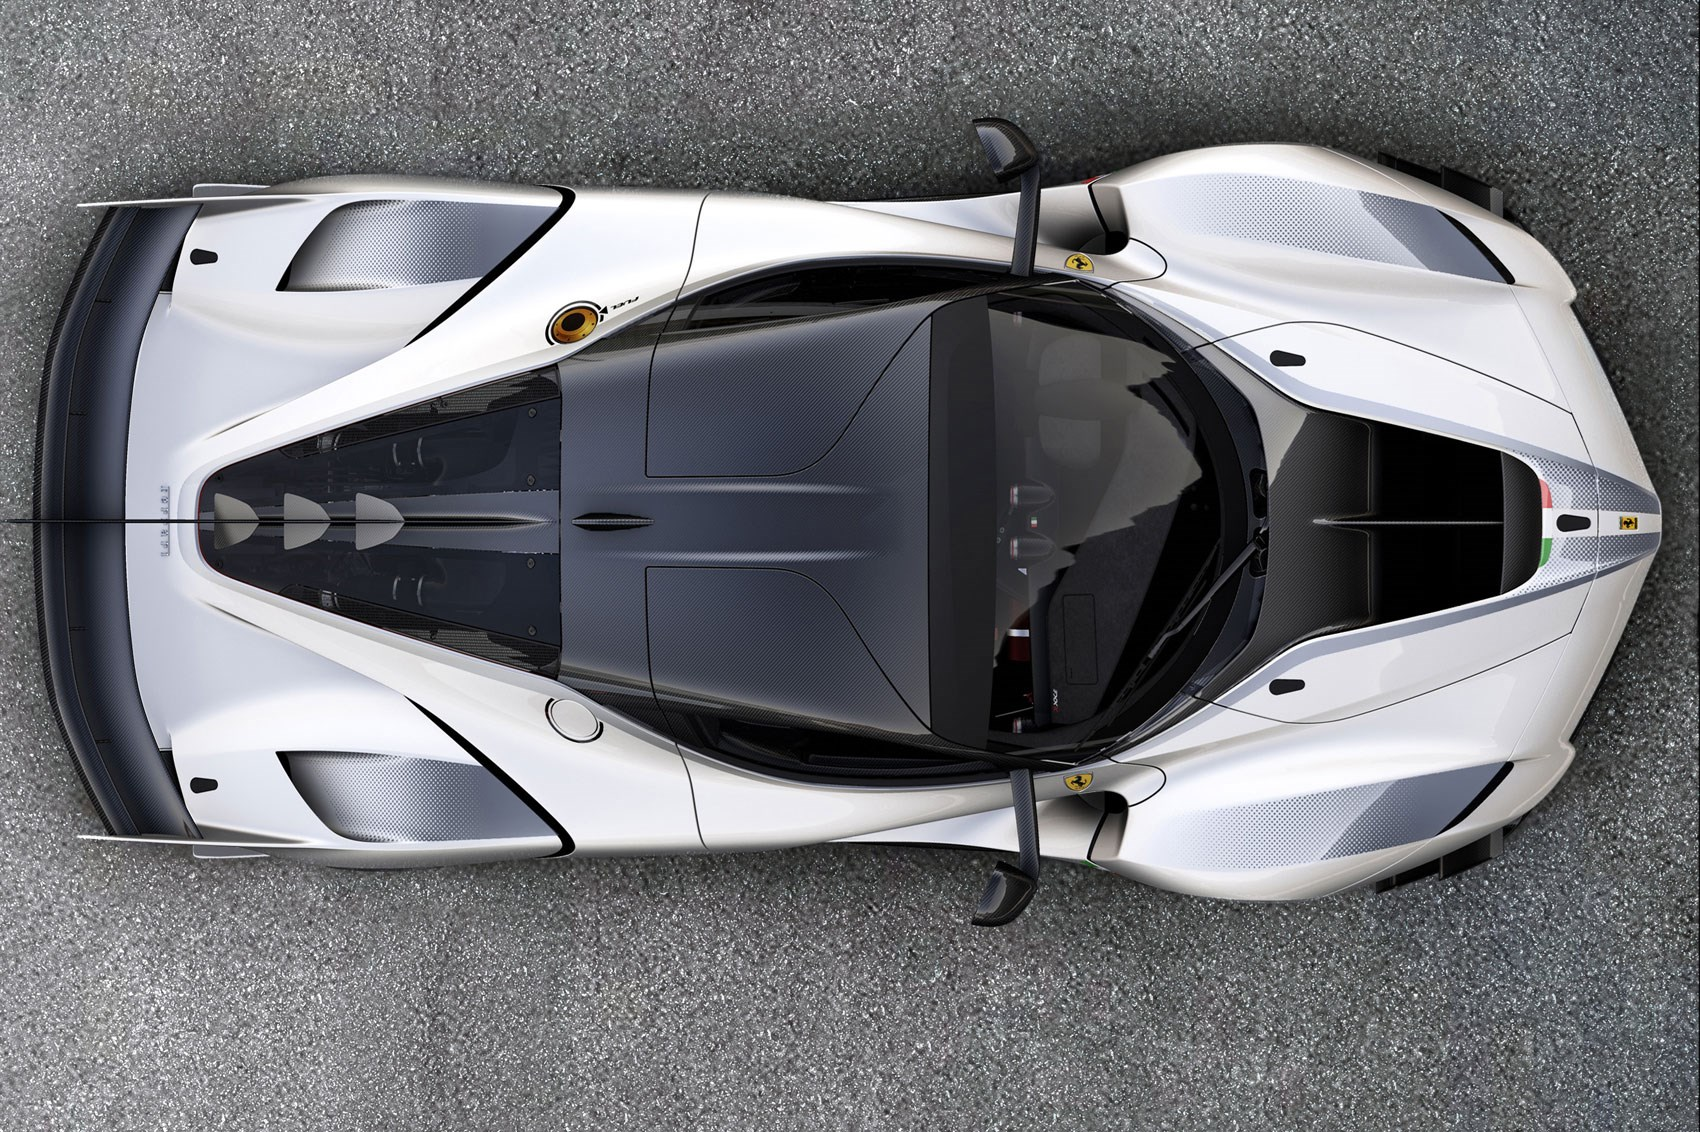 Morgan Car Wallpaper Ferrari Fxx K Evo First Pictures Of The Ultimate